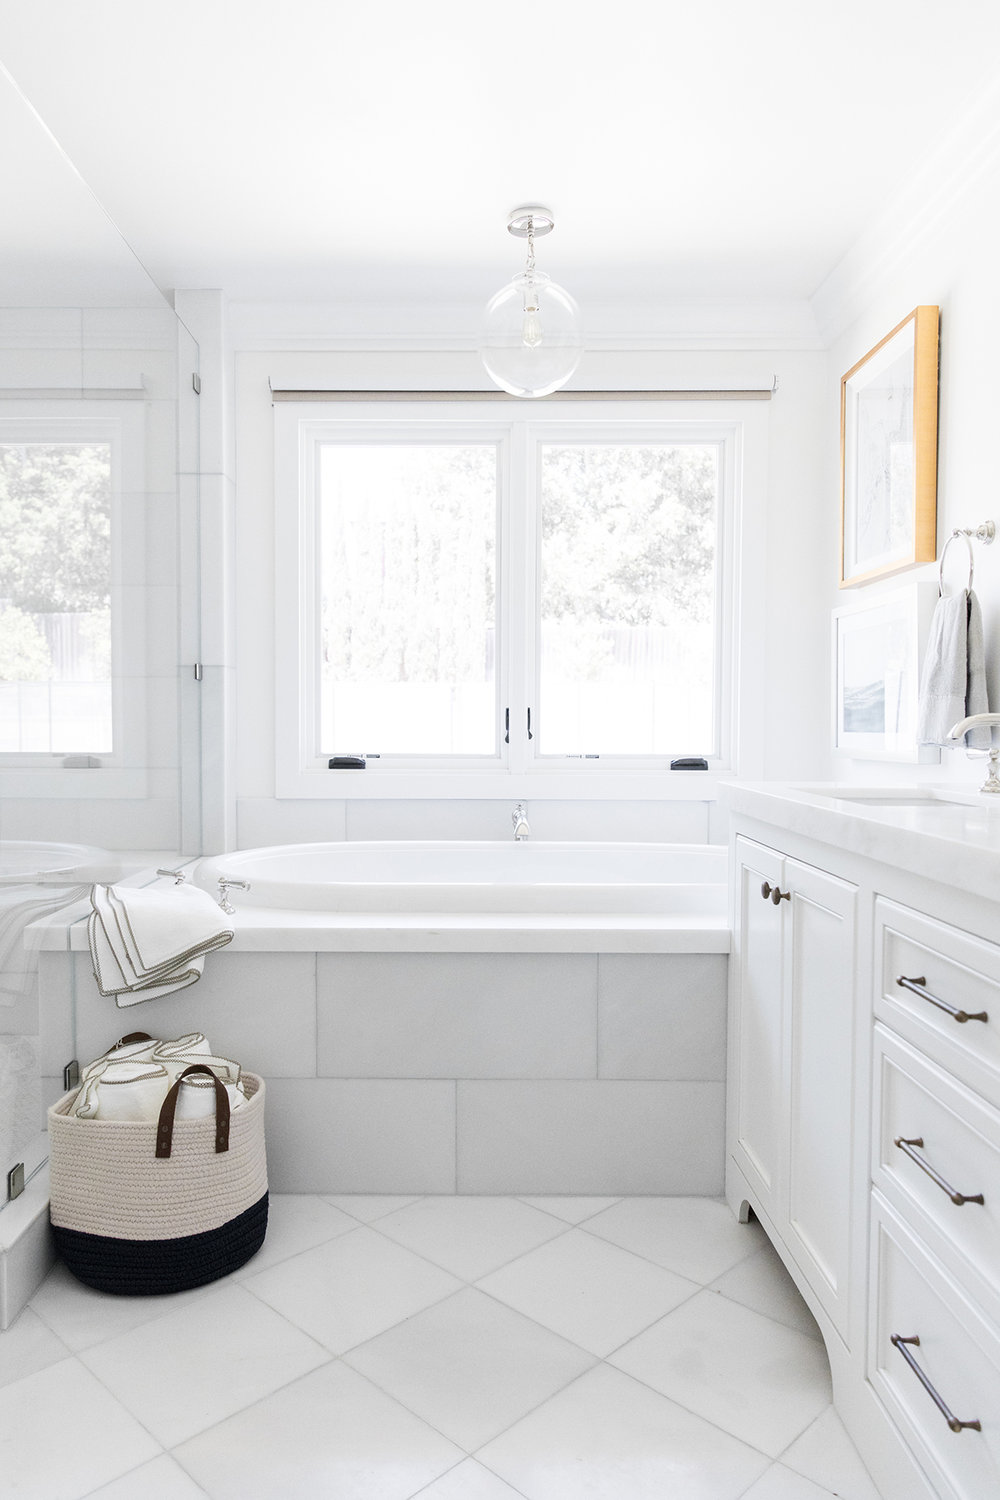 Clean+and+coastal+bathroom+with+pendant+over+bathtub,+brass+and+polished+nickel+decor+in+bathroom+_+Studio+McGee+Design-1.jpg